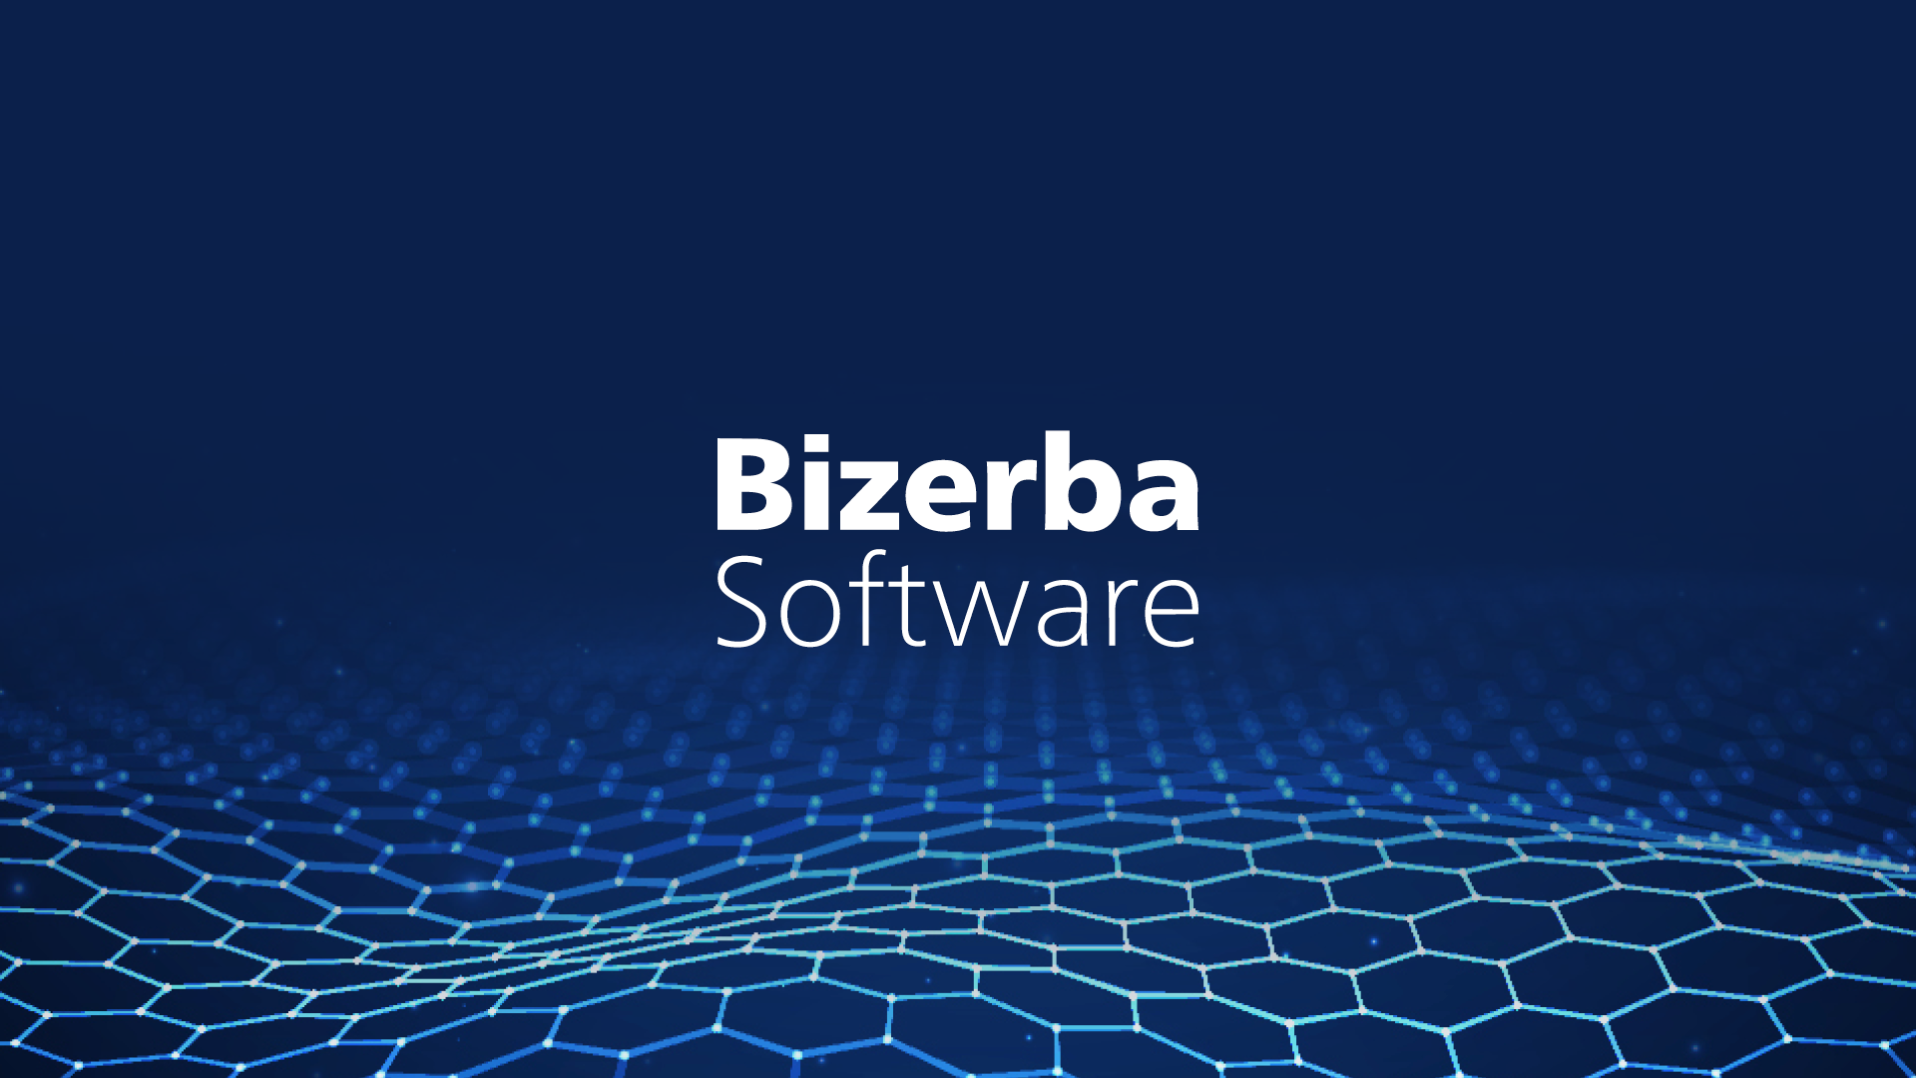 Программное обеспечение Bizerba _dataMaintenance.BRAIN для промышленных систем